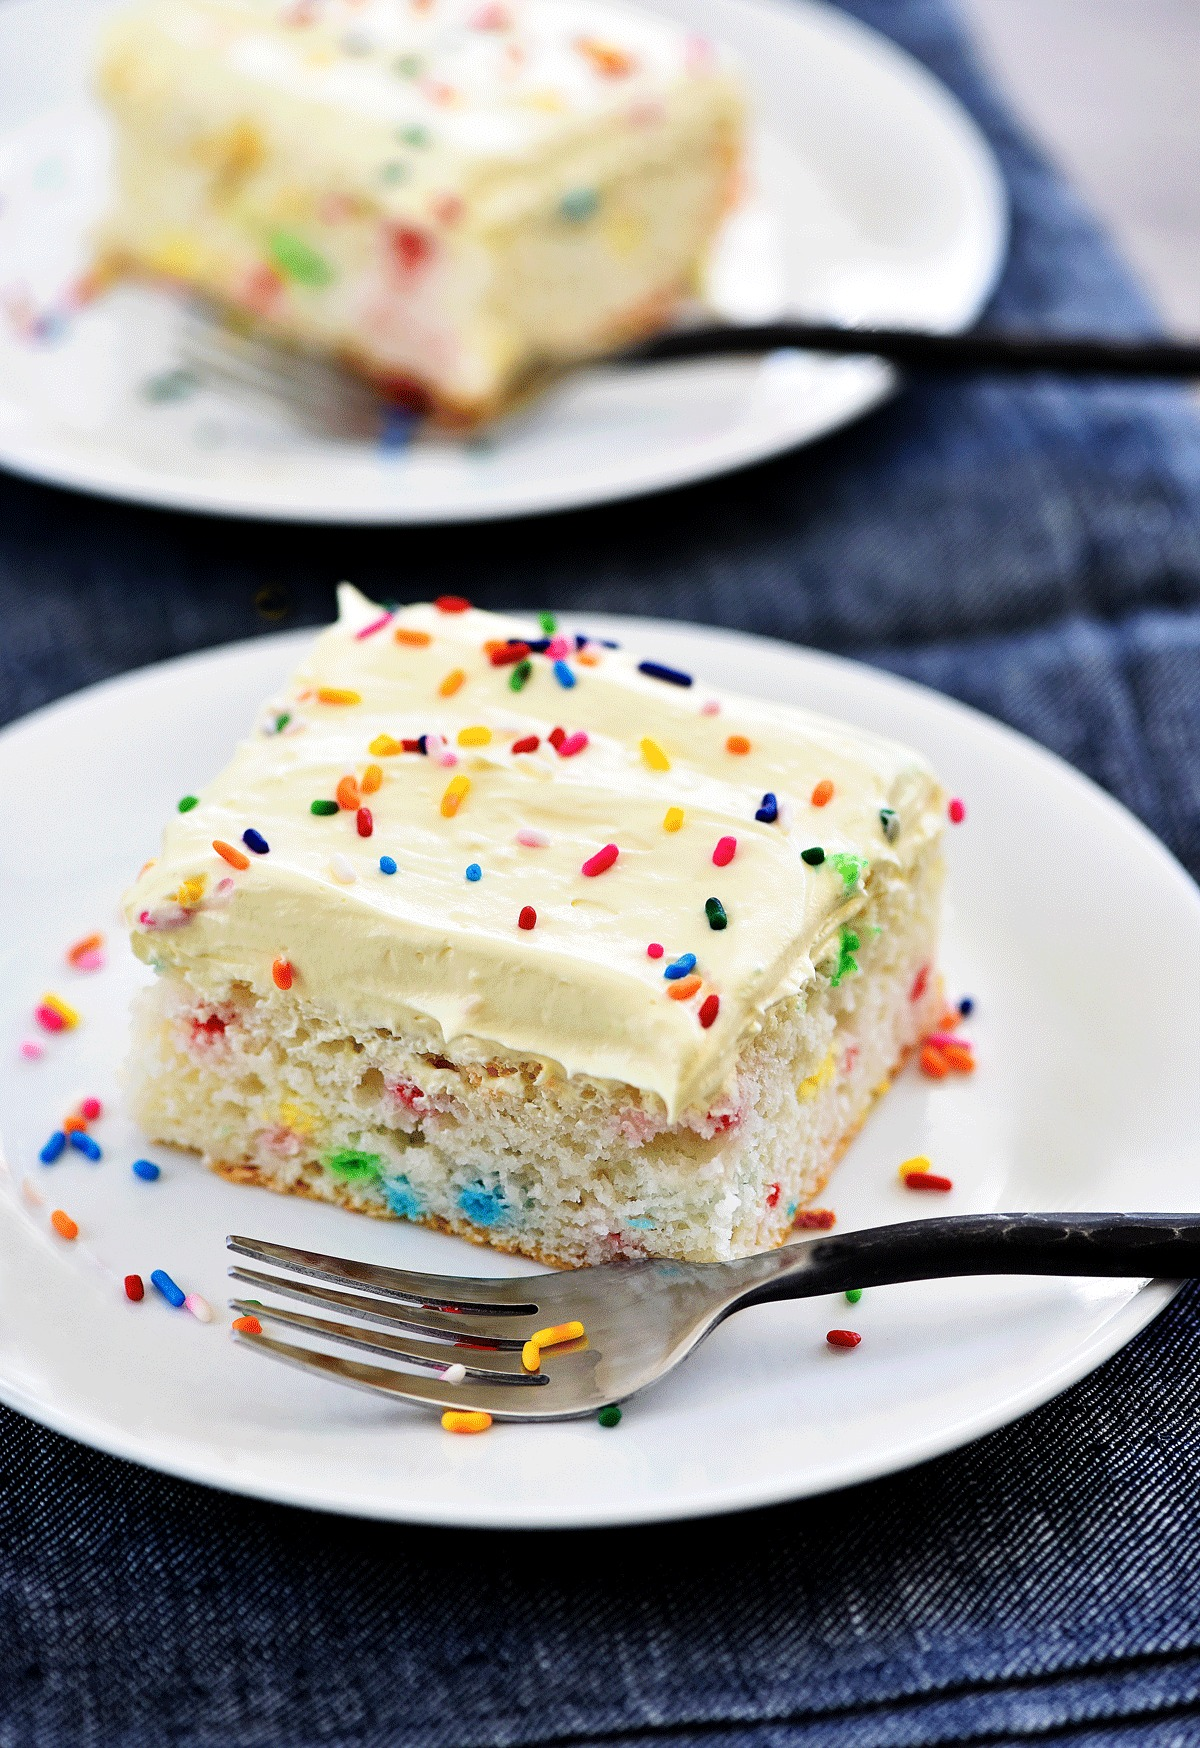 Skinny Funfetti Cake is a light, moist cake filled with sprinkles and lighter ingrediants. Life-in-the-Lofthouse.com